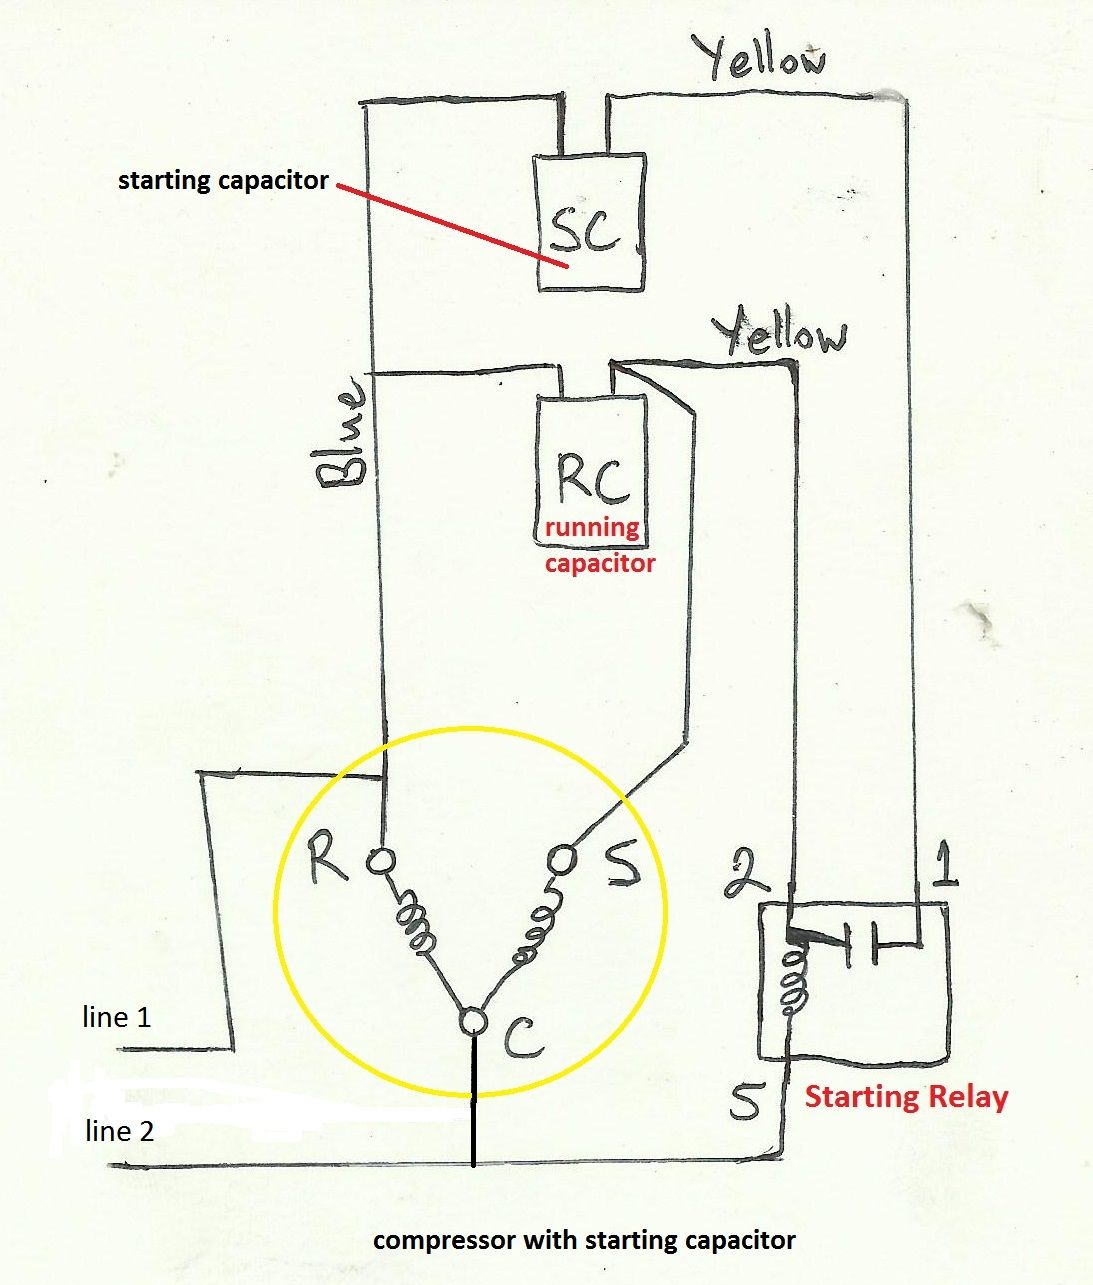 hight resolution of rotary compressor wiring diagram wiring diagram load panasonic rotary compressor wiring diagram ac compressor schematic wiring